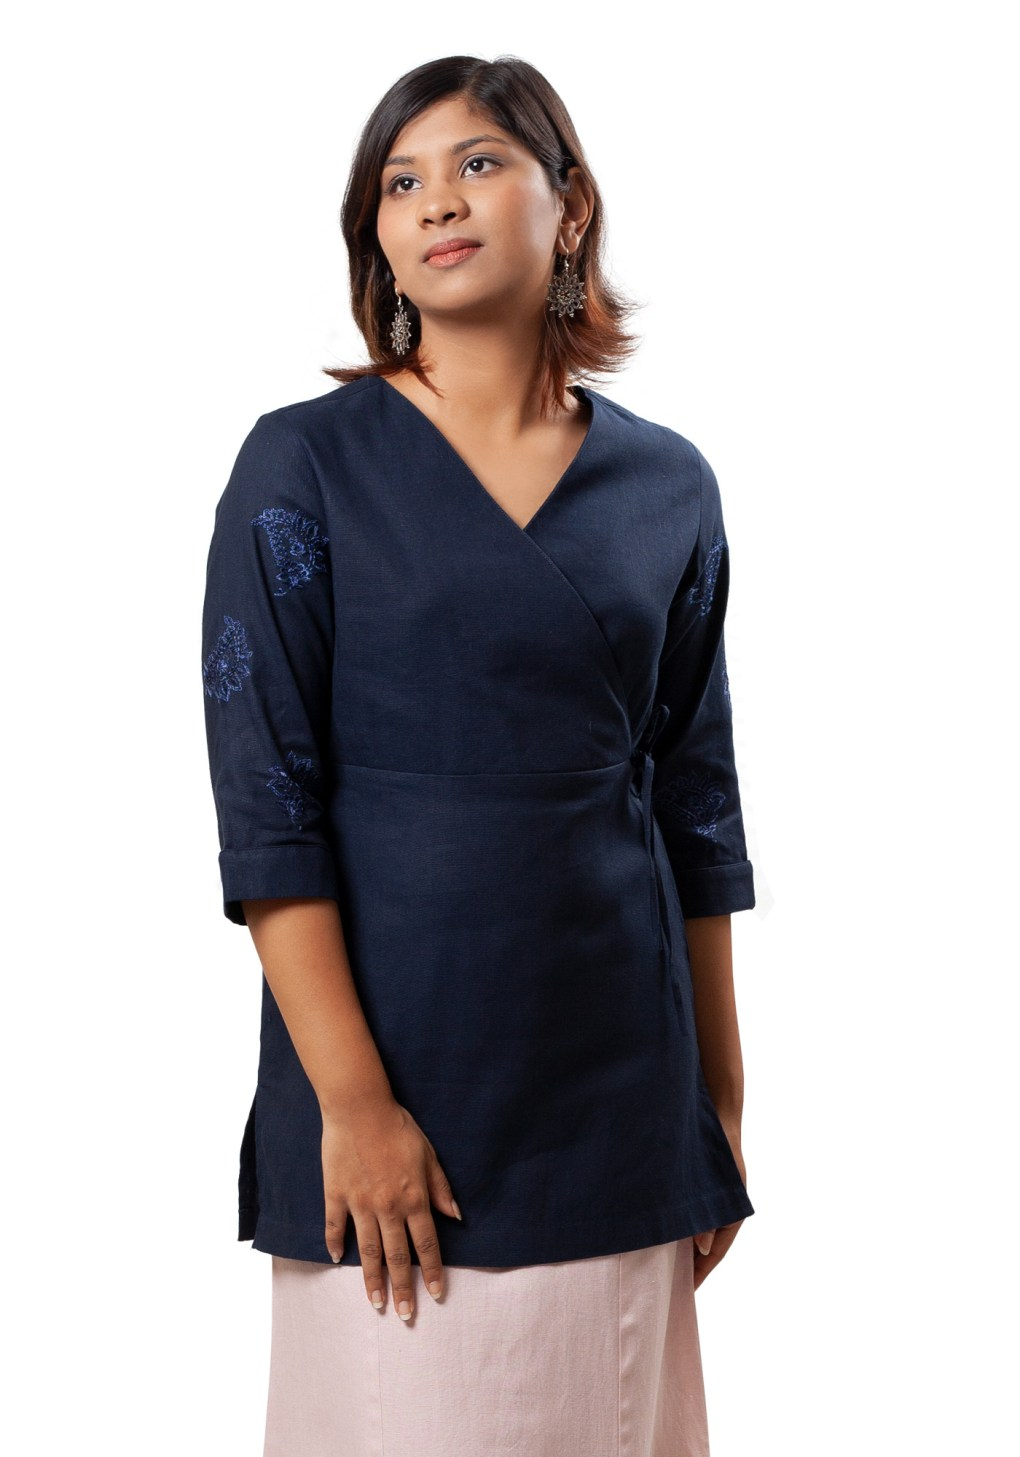 MINC Asymmetric Embroidered Tie Top in Navy Blue Cotton